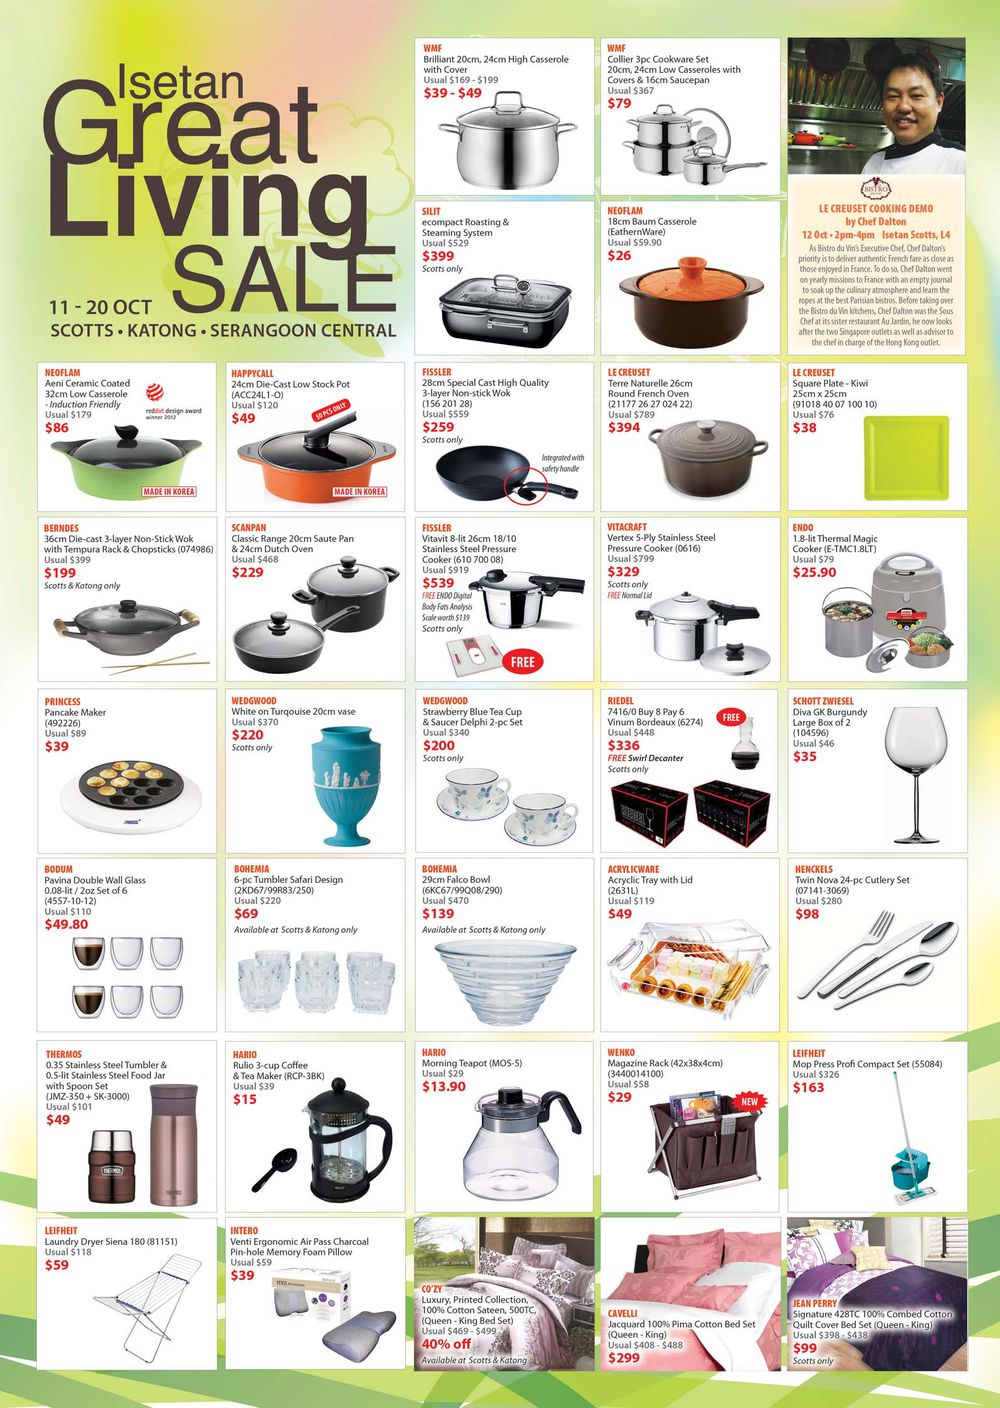 Where to buy kitchen accessories in singapore